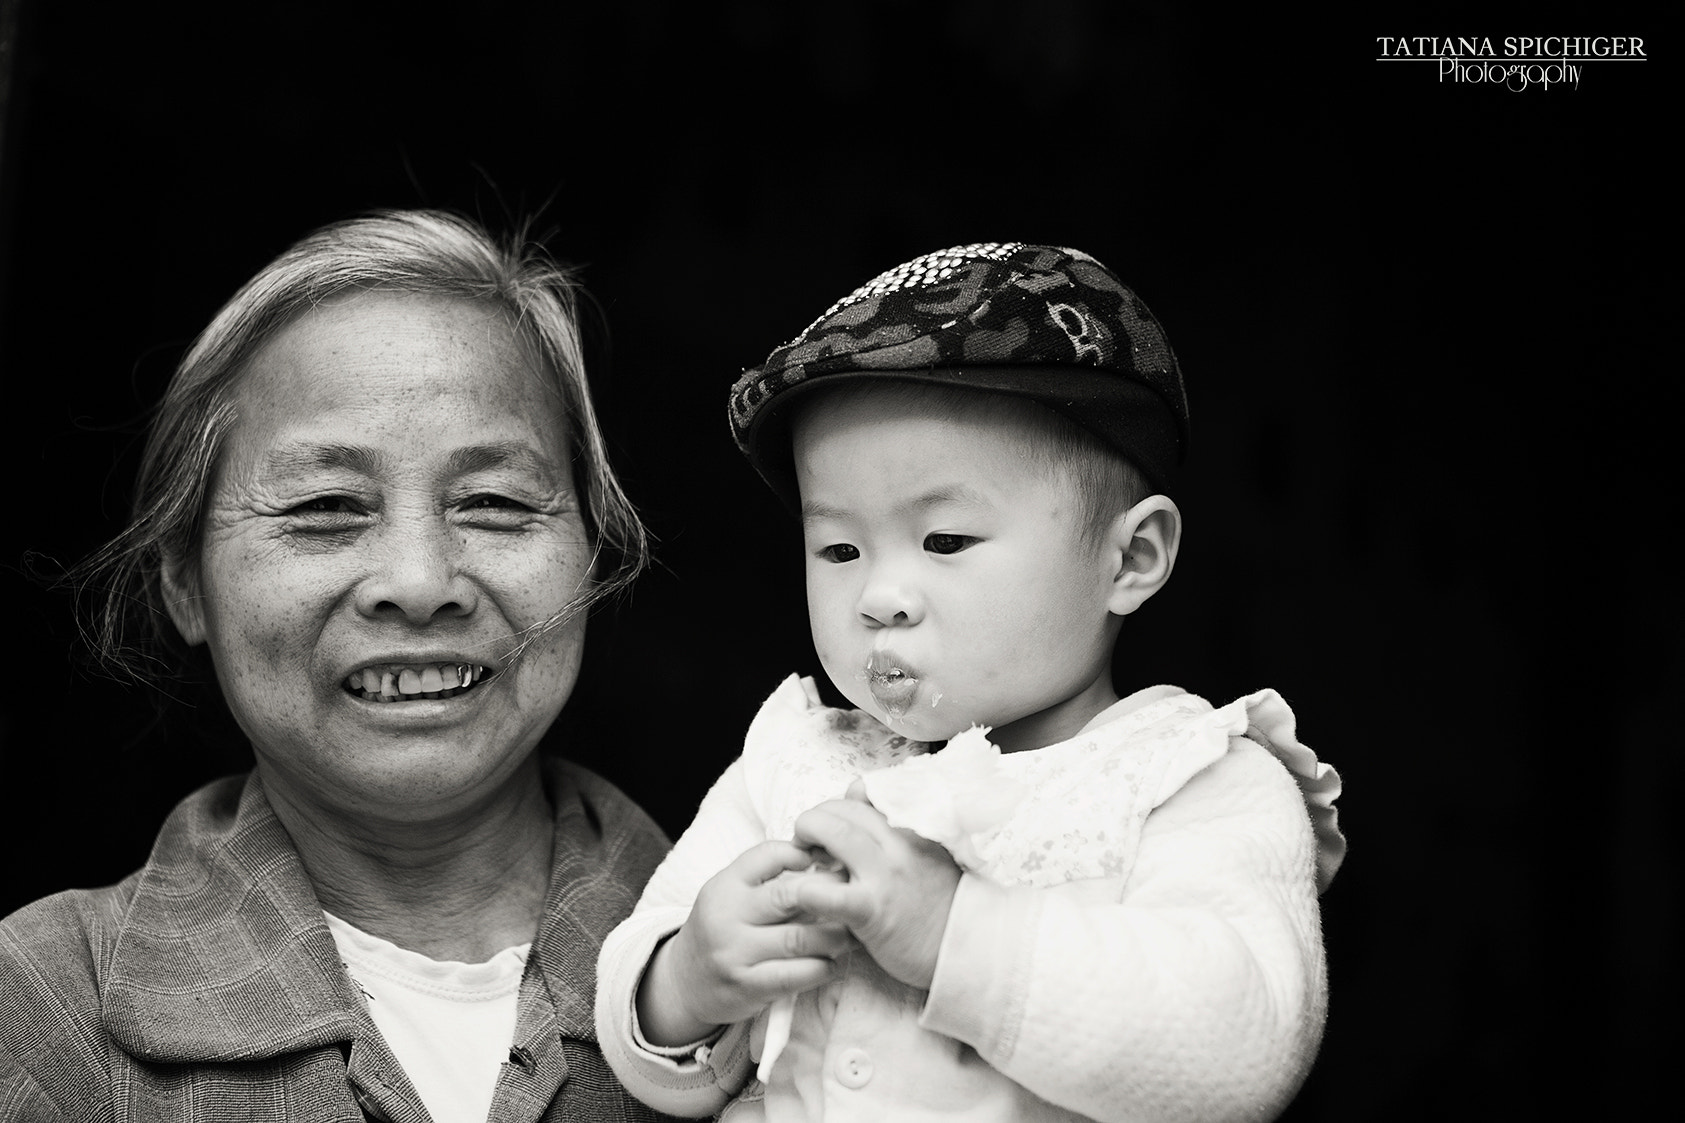 Photograph The granma! by Tatiana Spichiger on 500px